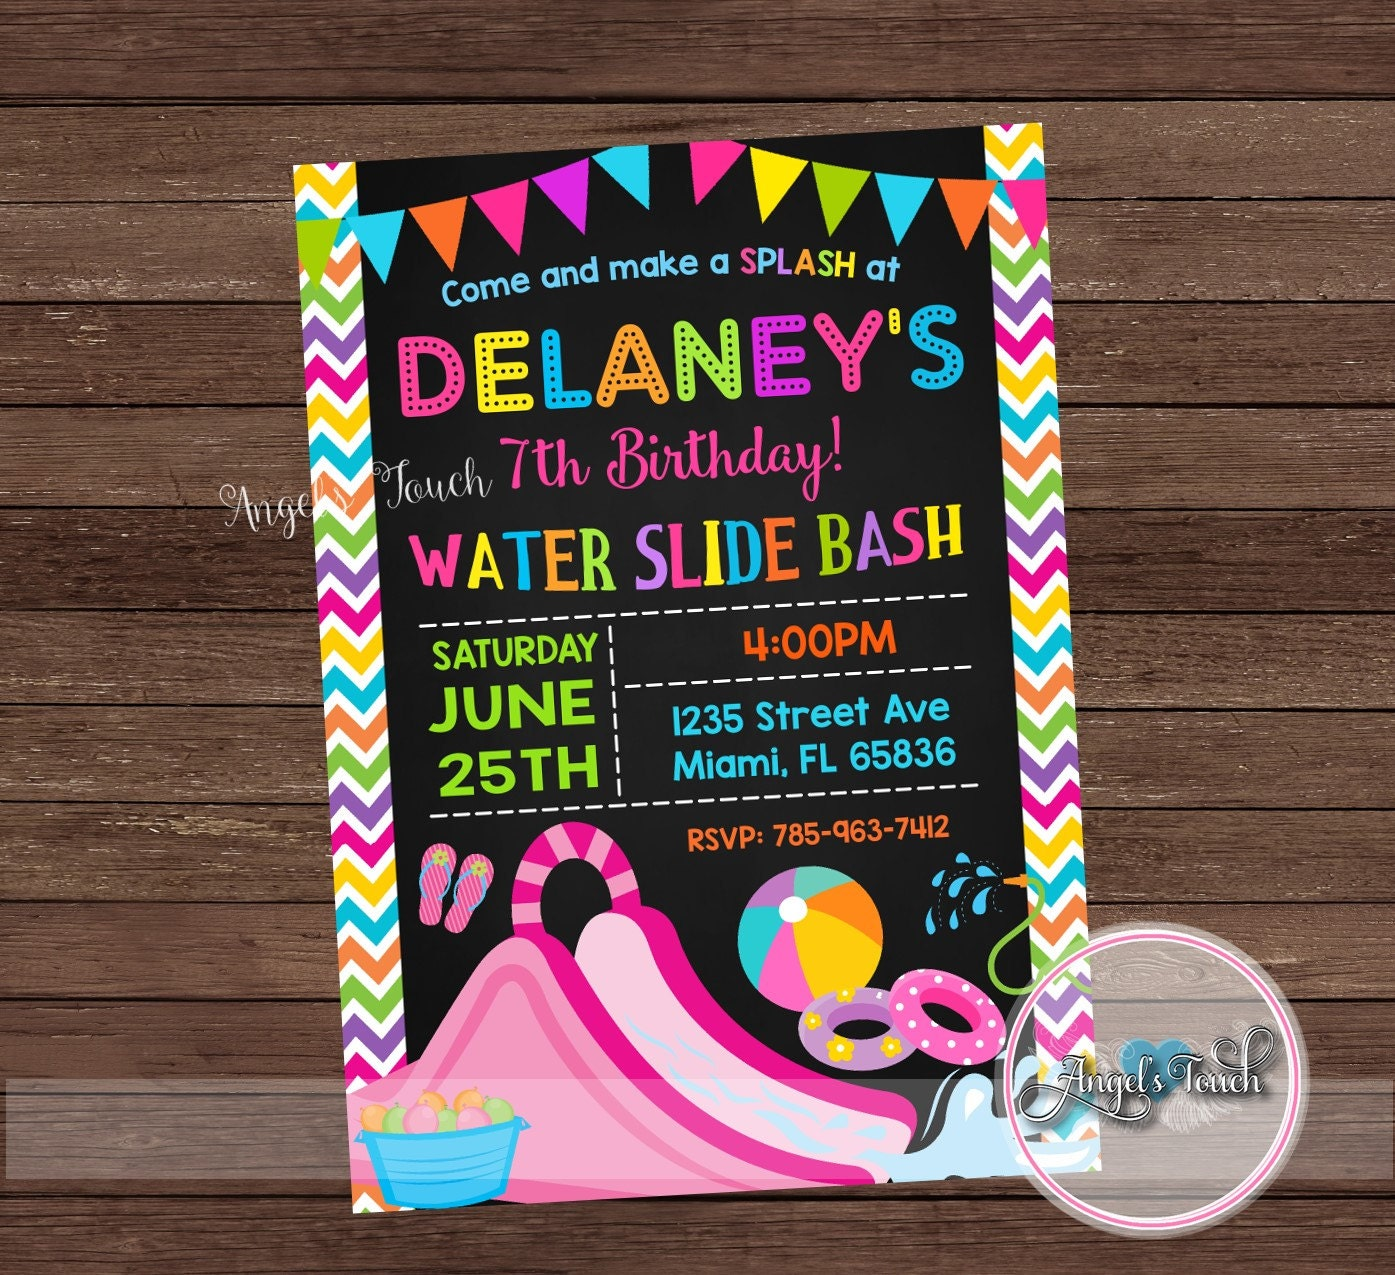 Water Slide Party Invitation Waterslide Birthday Invitation